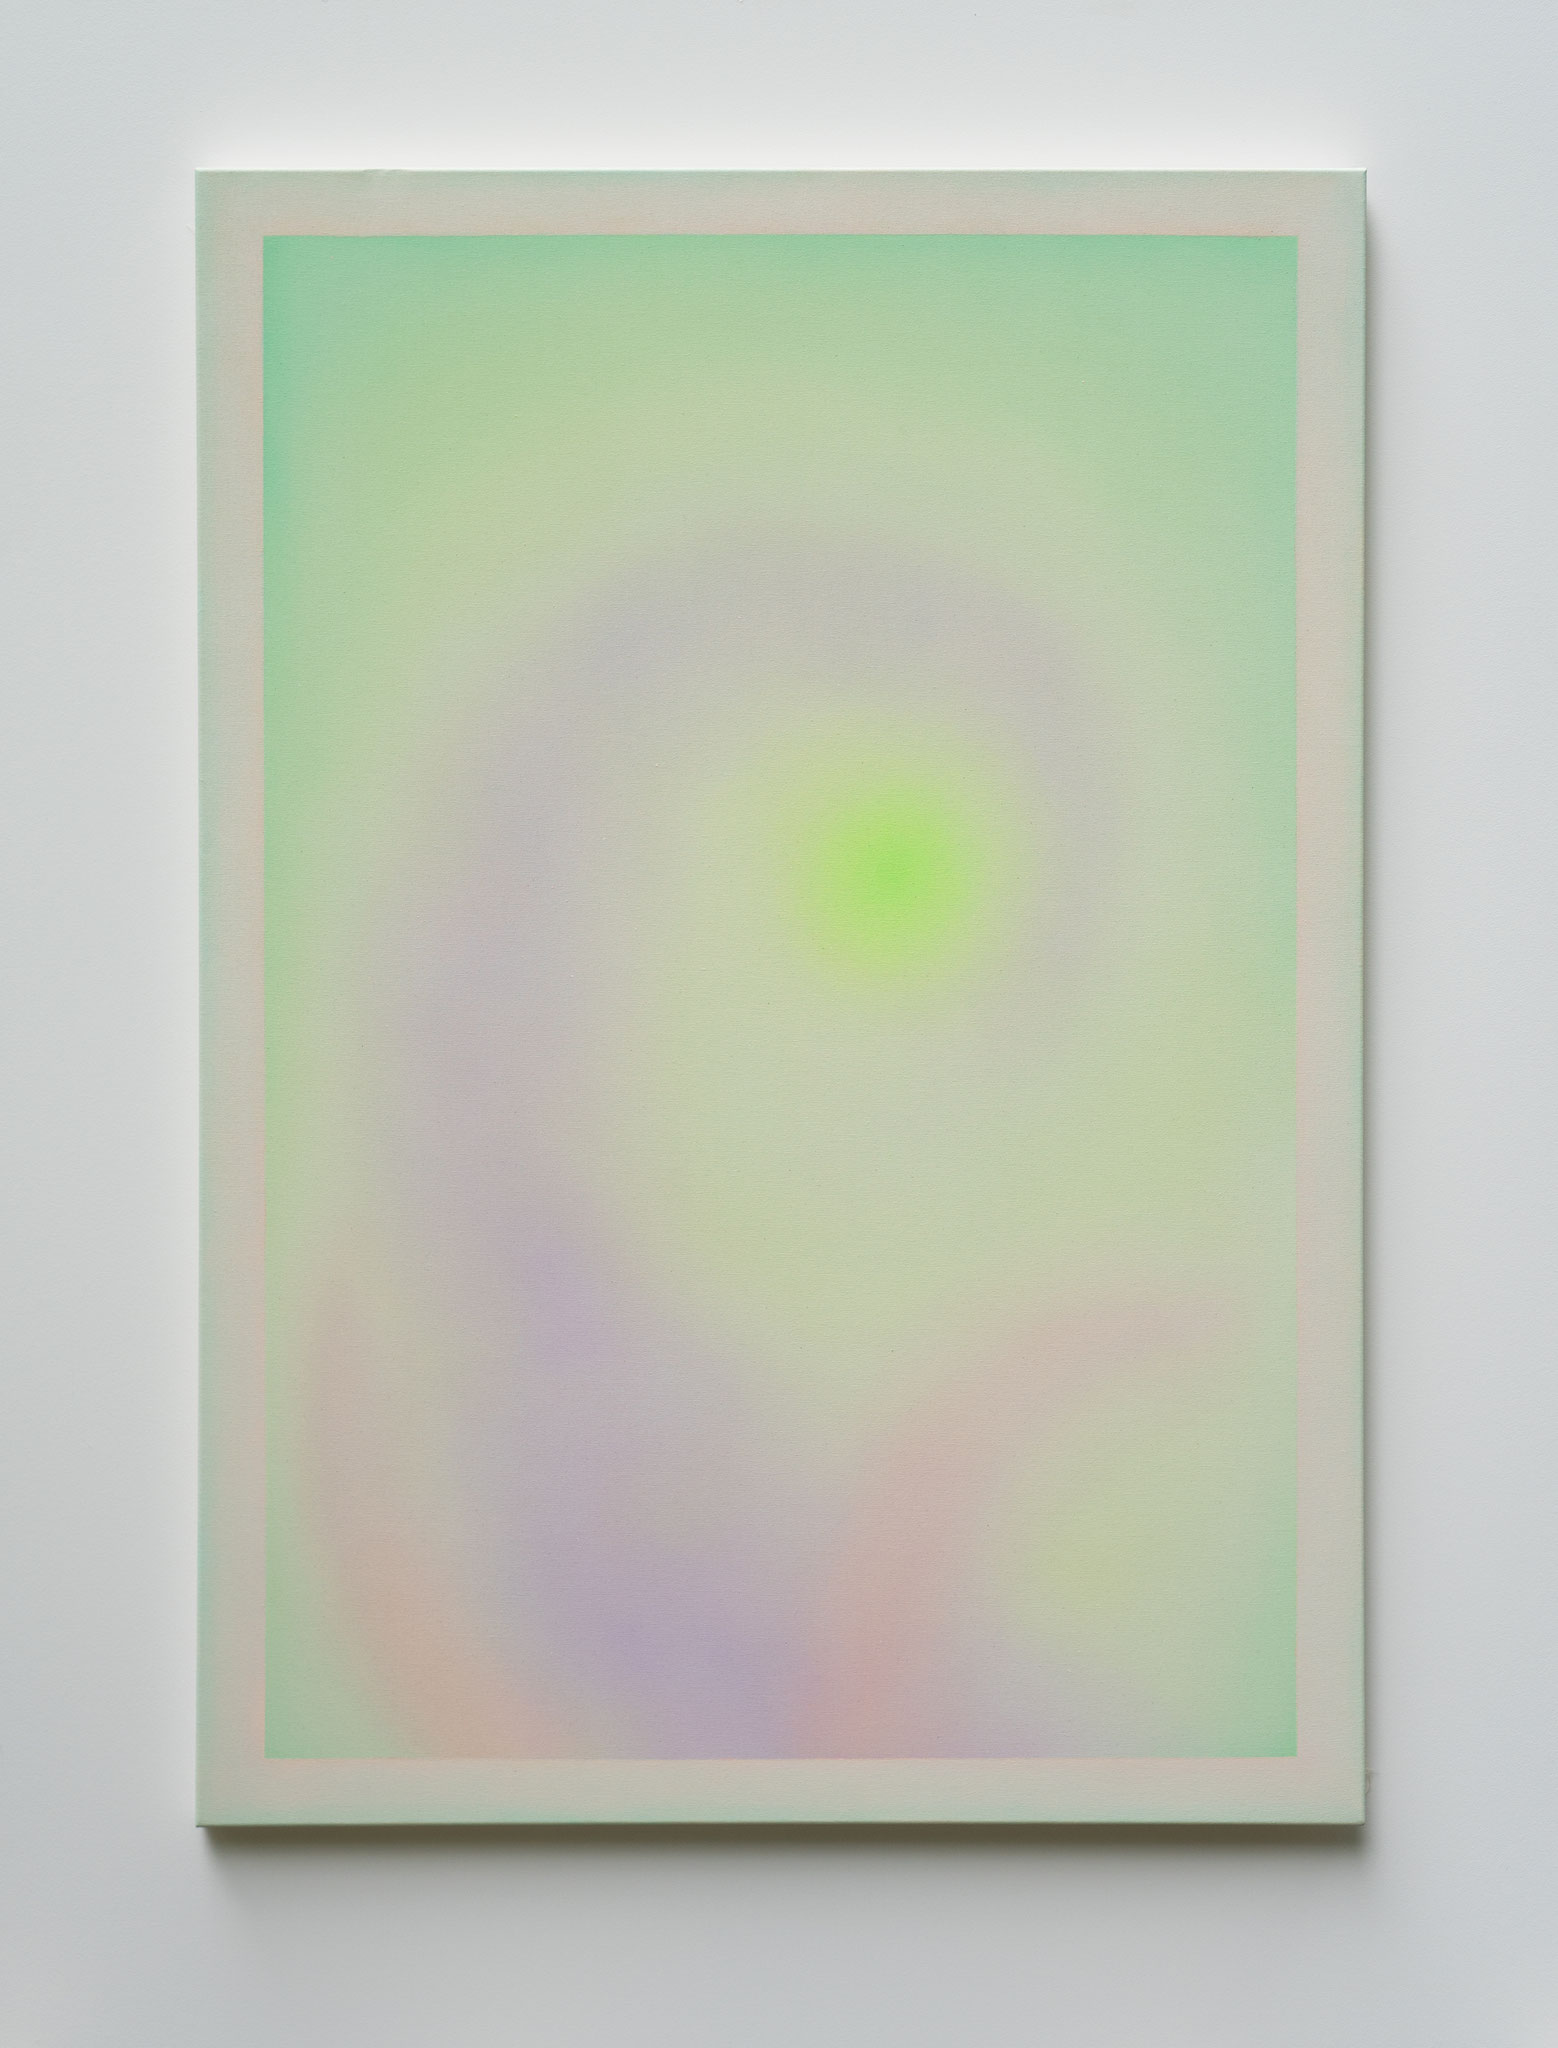 "Alina Birkner ""Untitled (Outer Planet Seedling)"" 2020, 170x120 cm, Acrylic on Canvas"